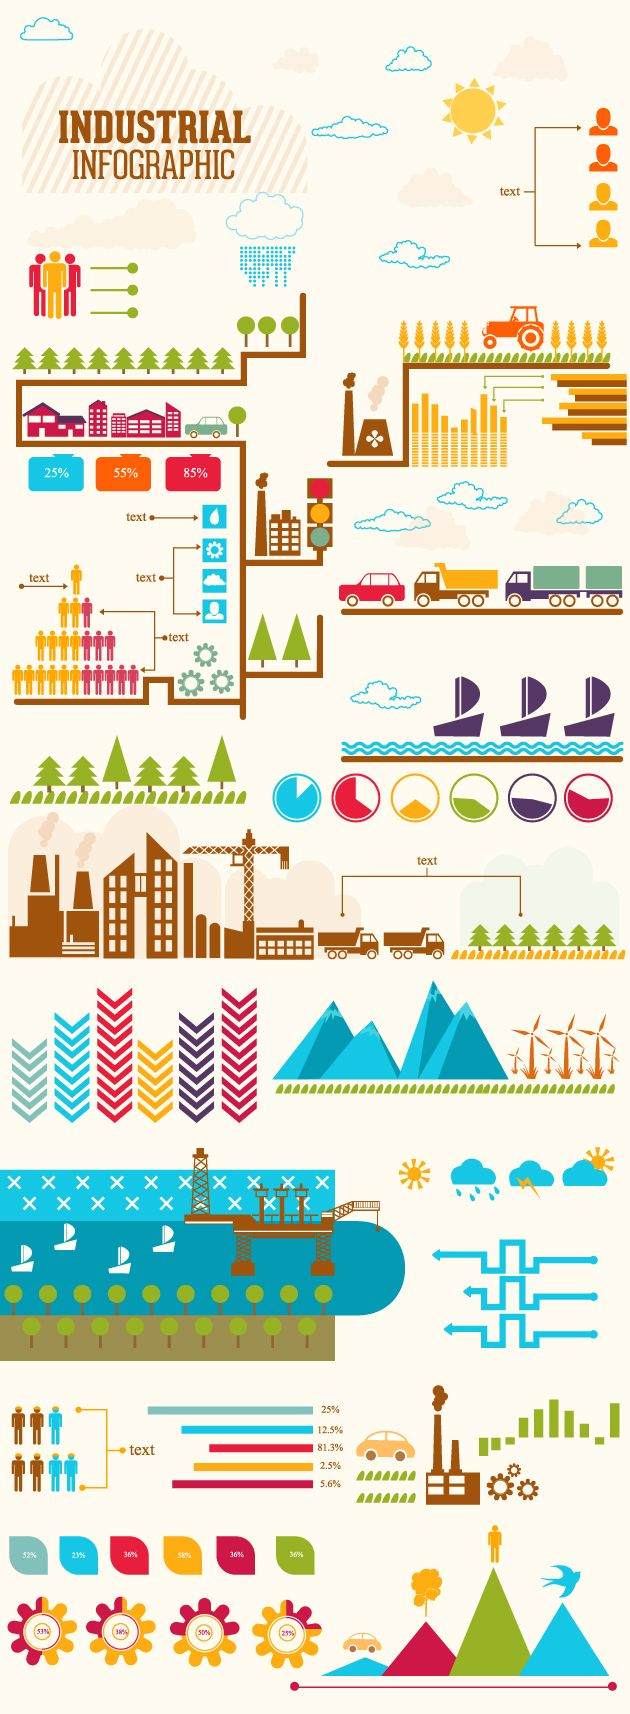 industrial-infographic-vector